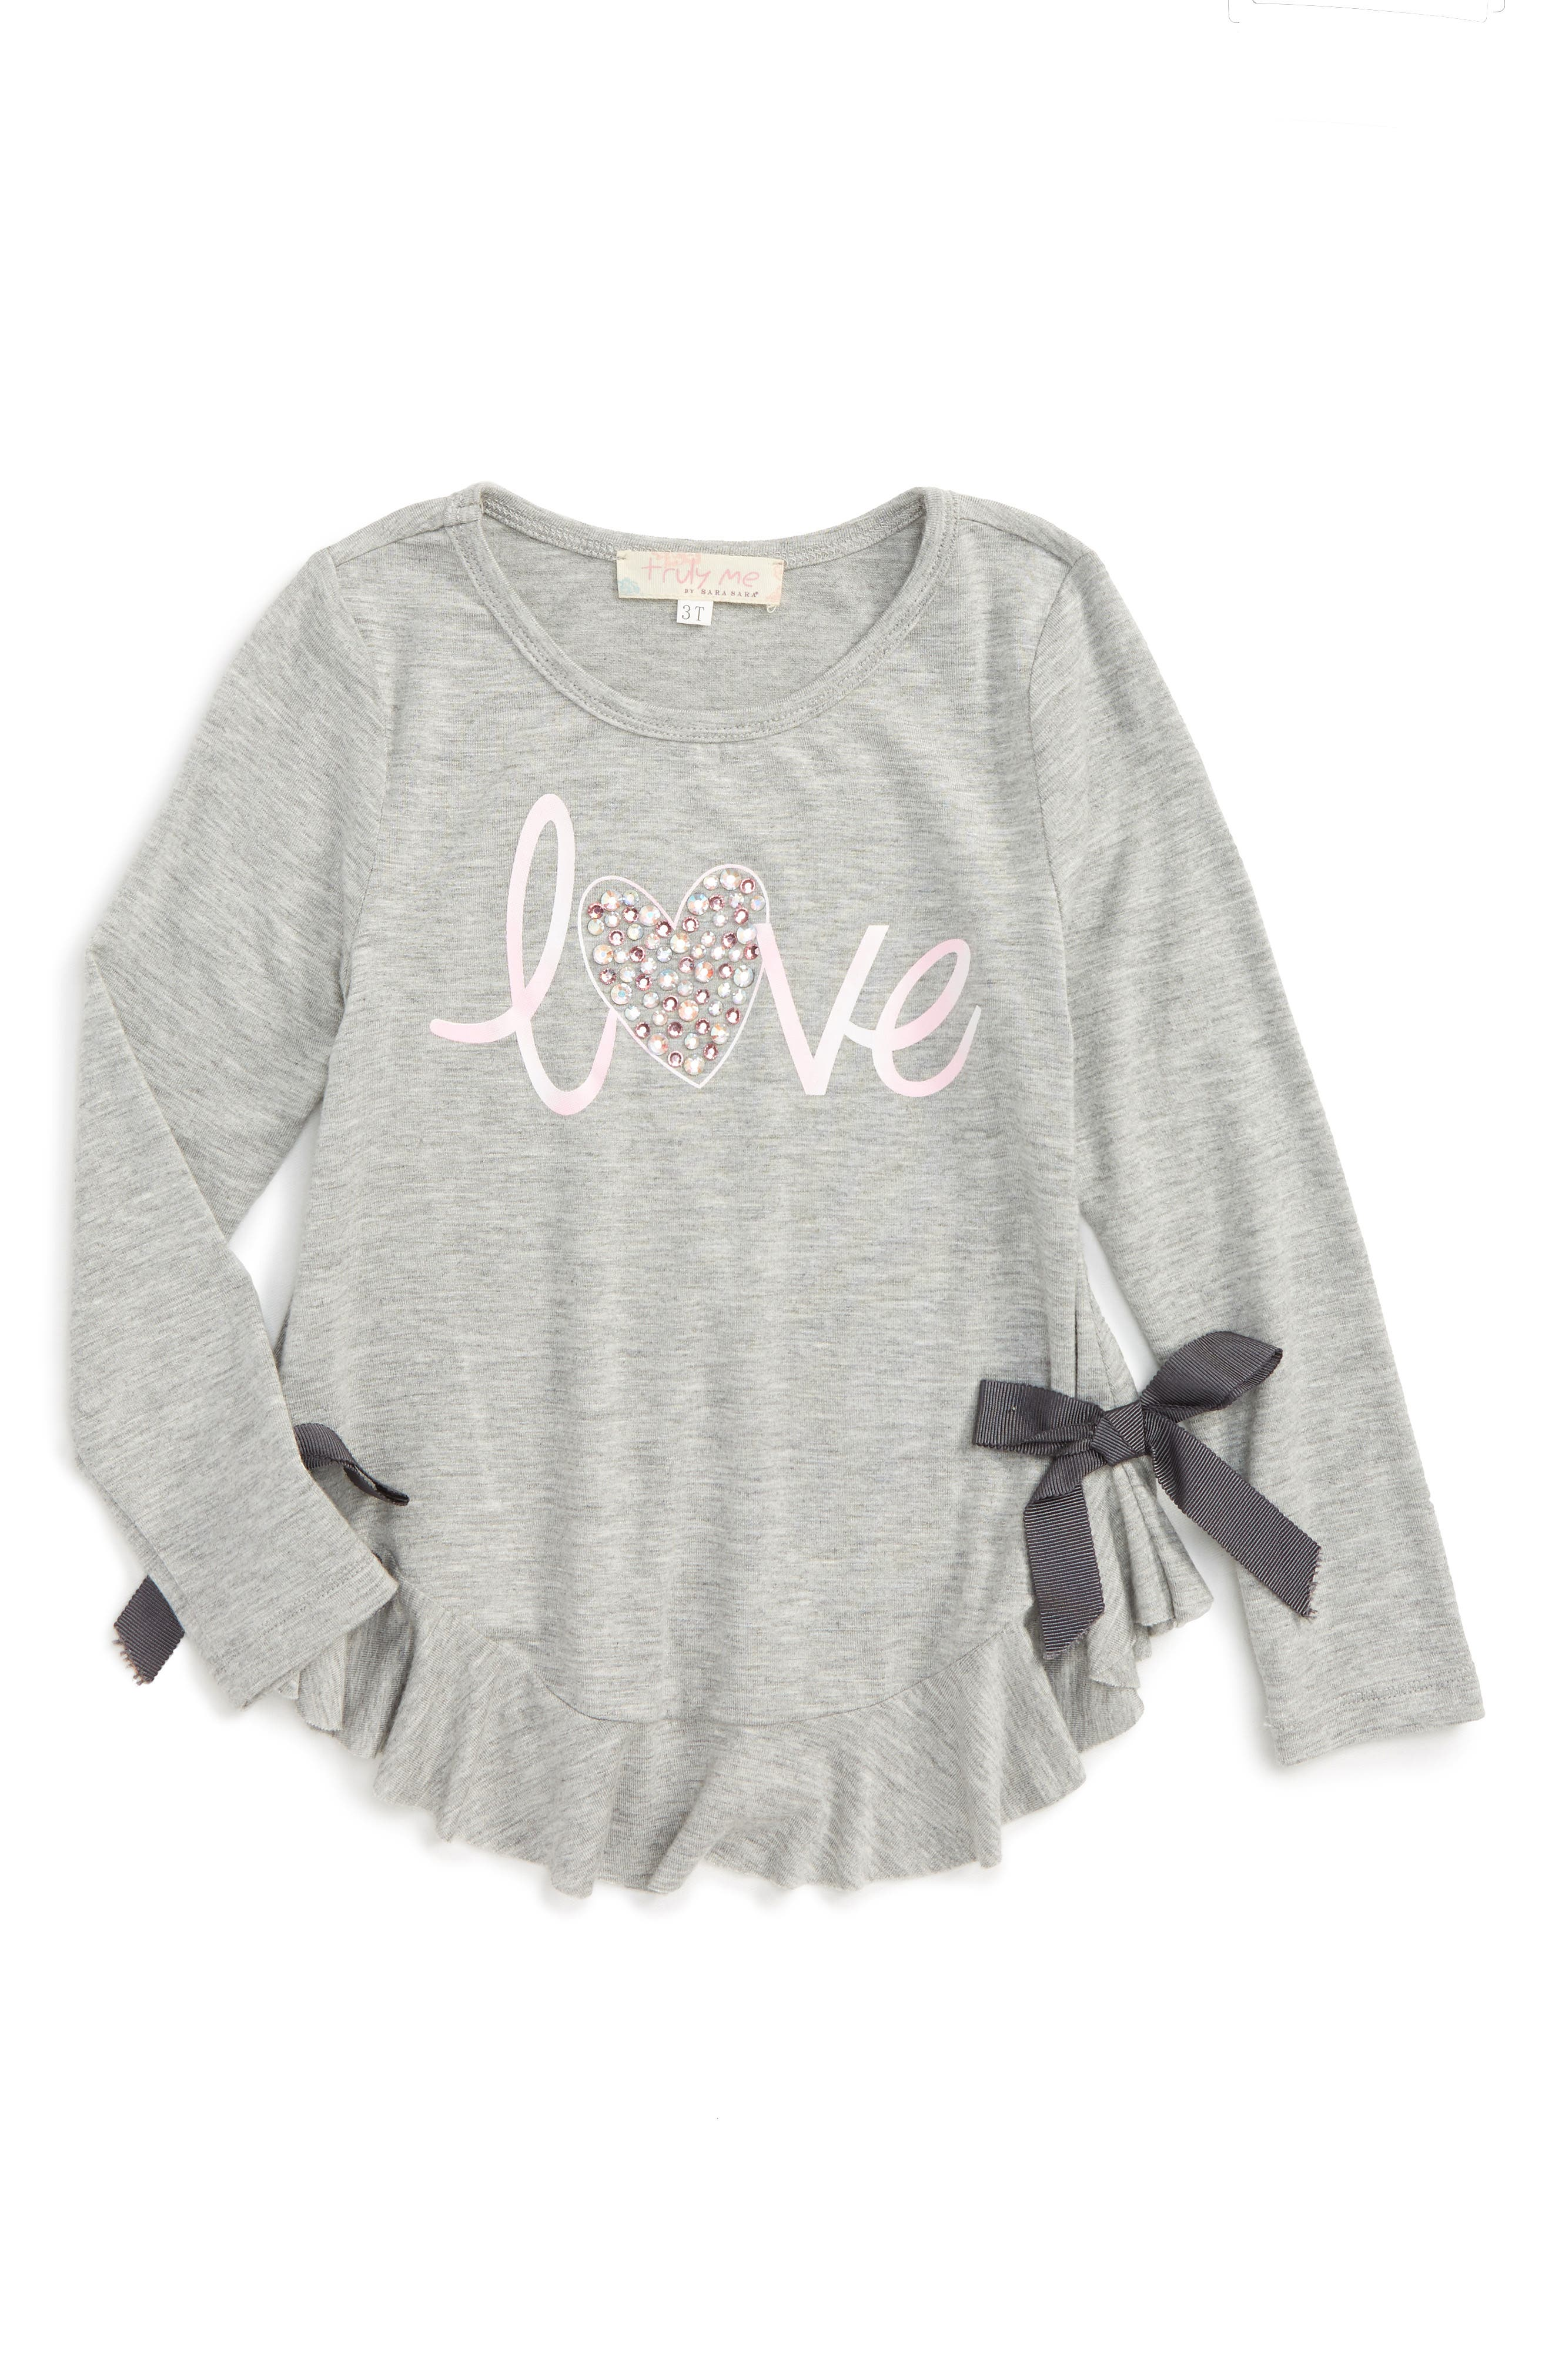 Alternate Image 1 Selected - Truly Me Love Embellished Graphic Tee (Toddler Girls & Little Girls)